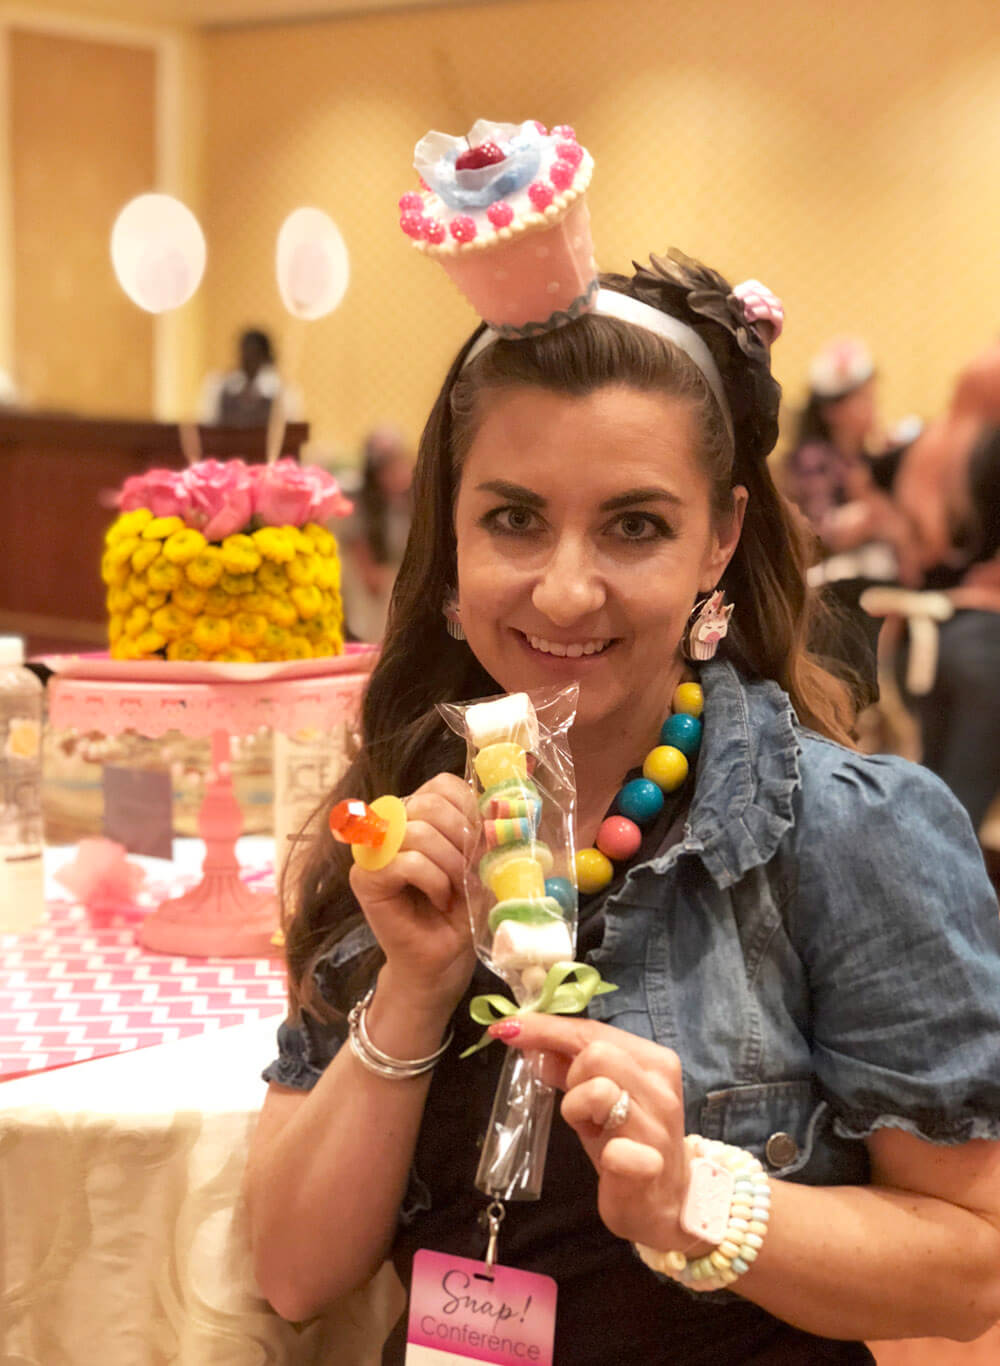 Girl holging candy kabob, wearing cupcake hat, and gumball necklace for sweets party at SNAP conference